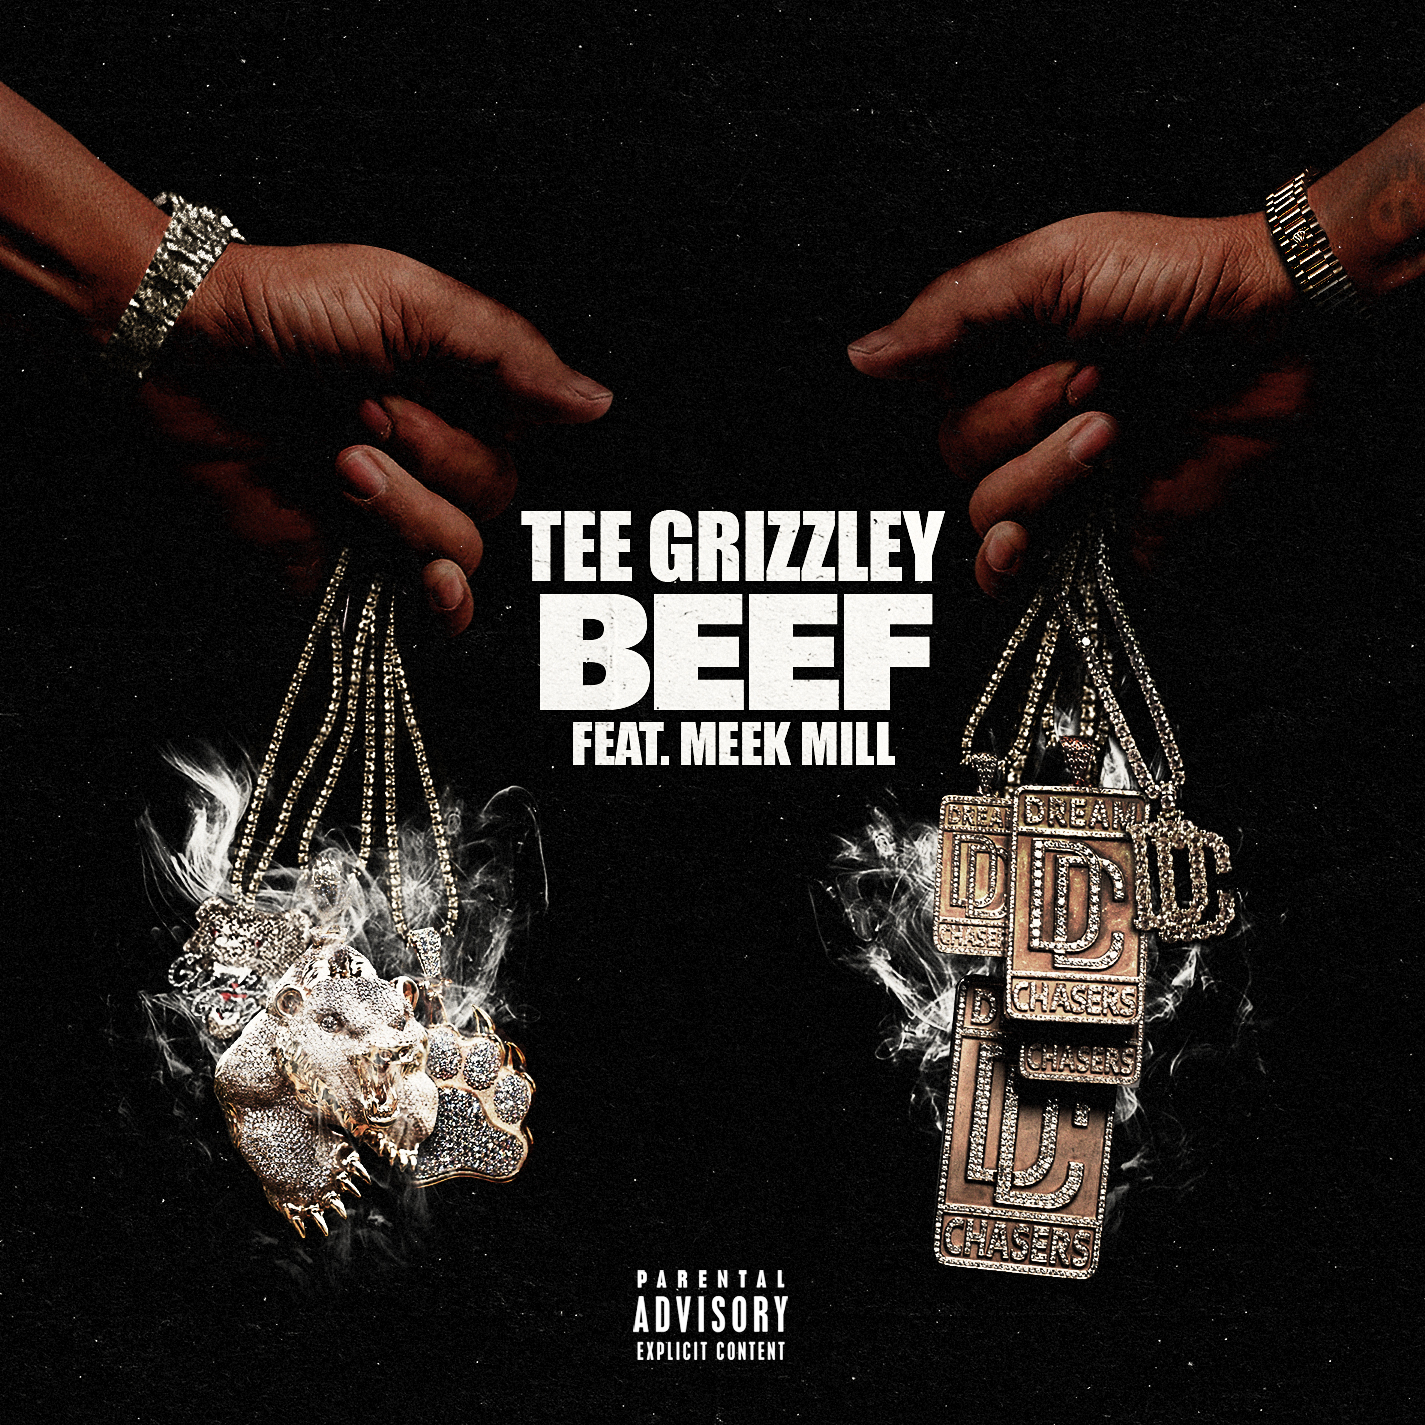 Tee Grizzley - Beef single art